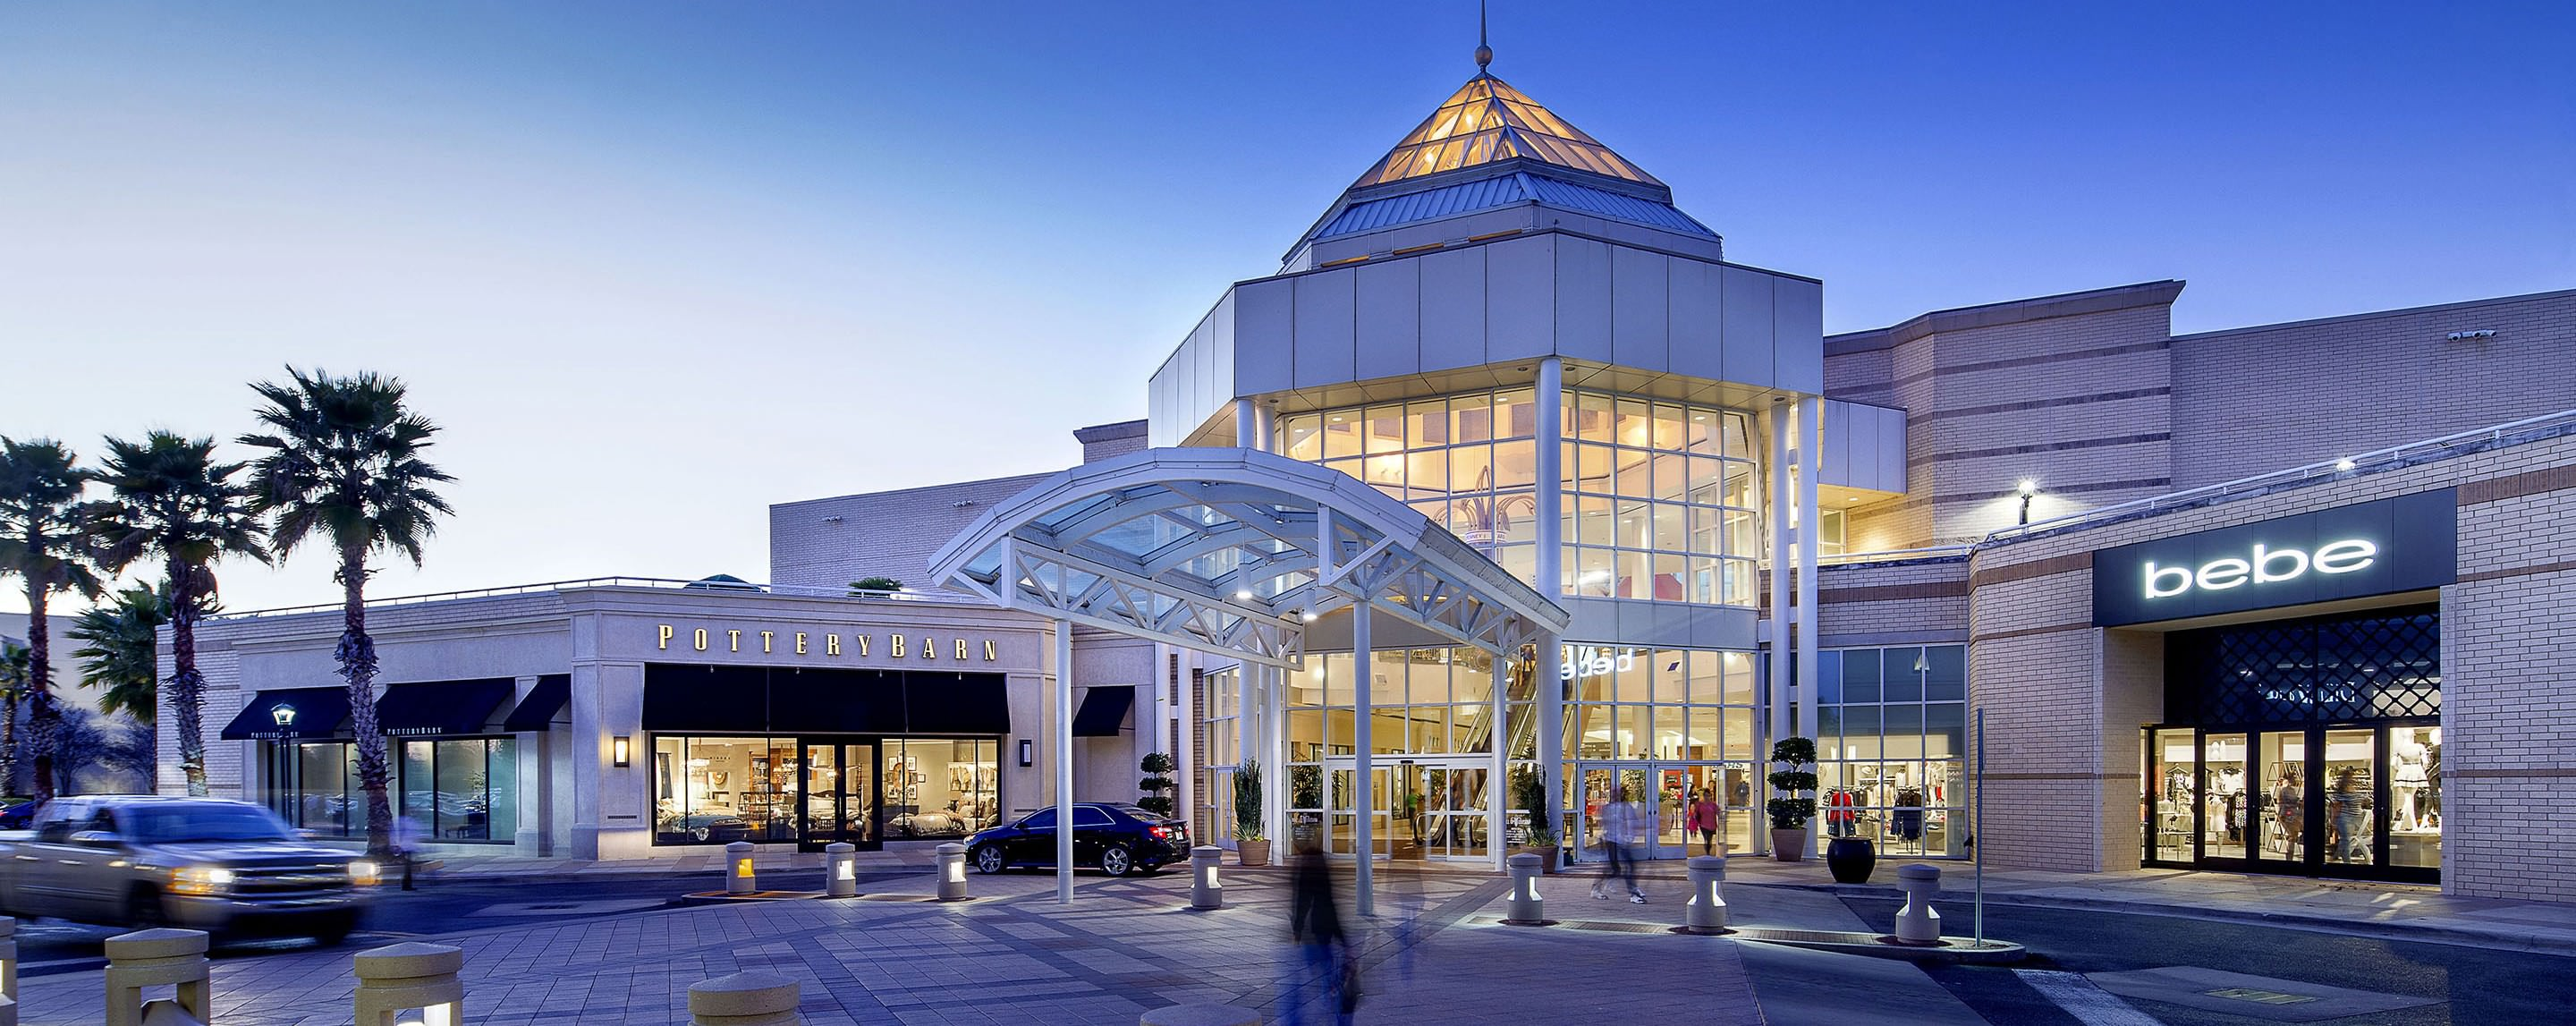 An exterior of a mall is well lit at twilight. A Bebe and a Pottery Barn are visible.